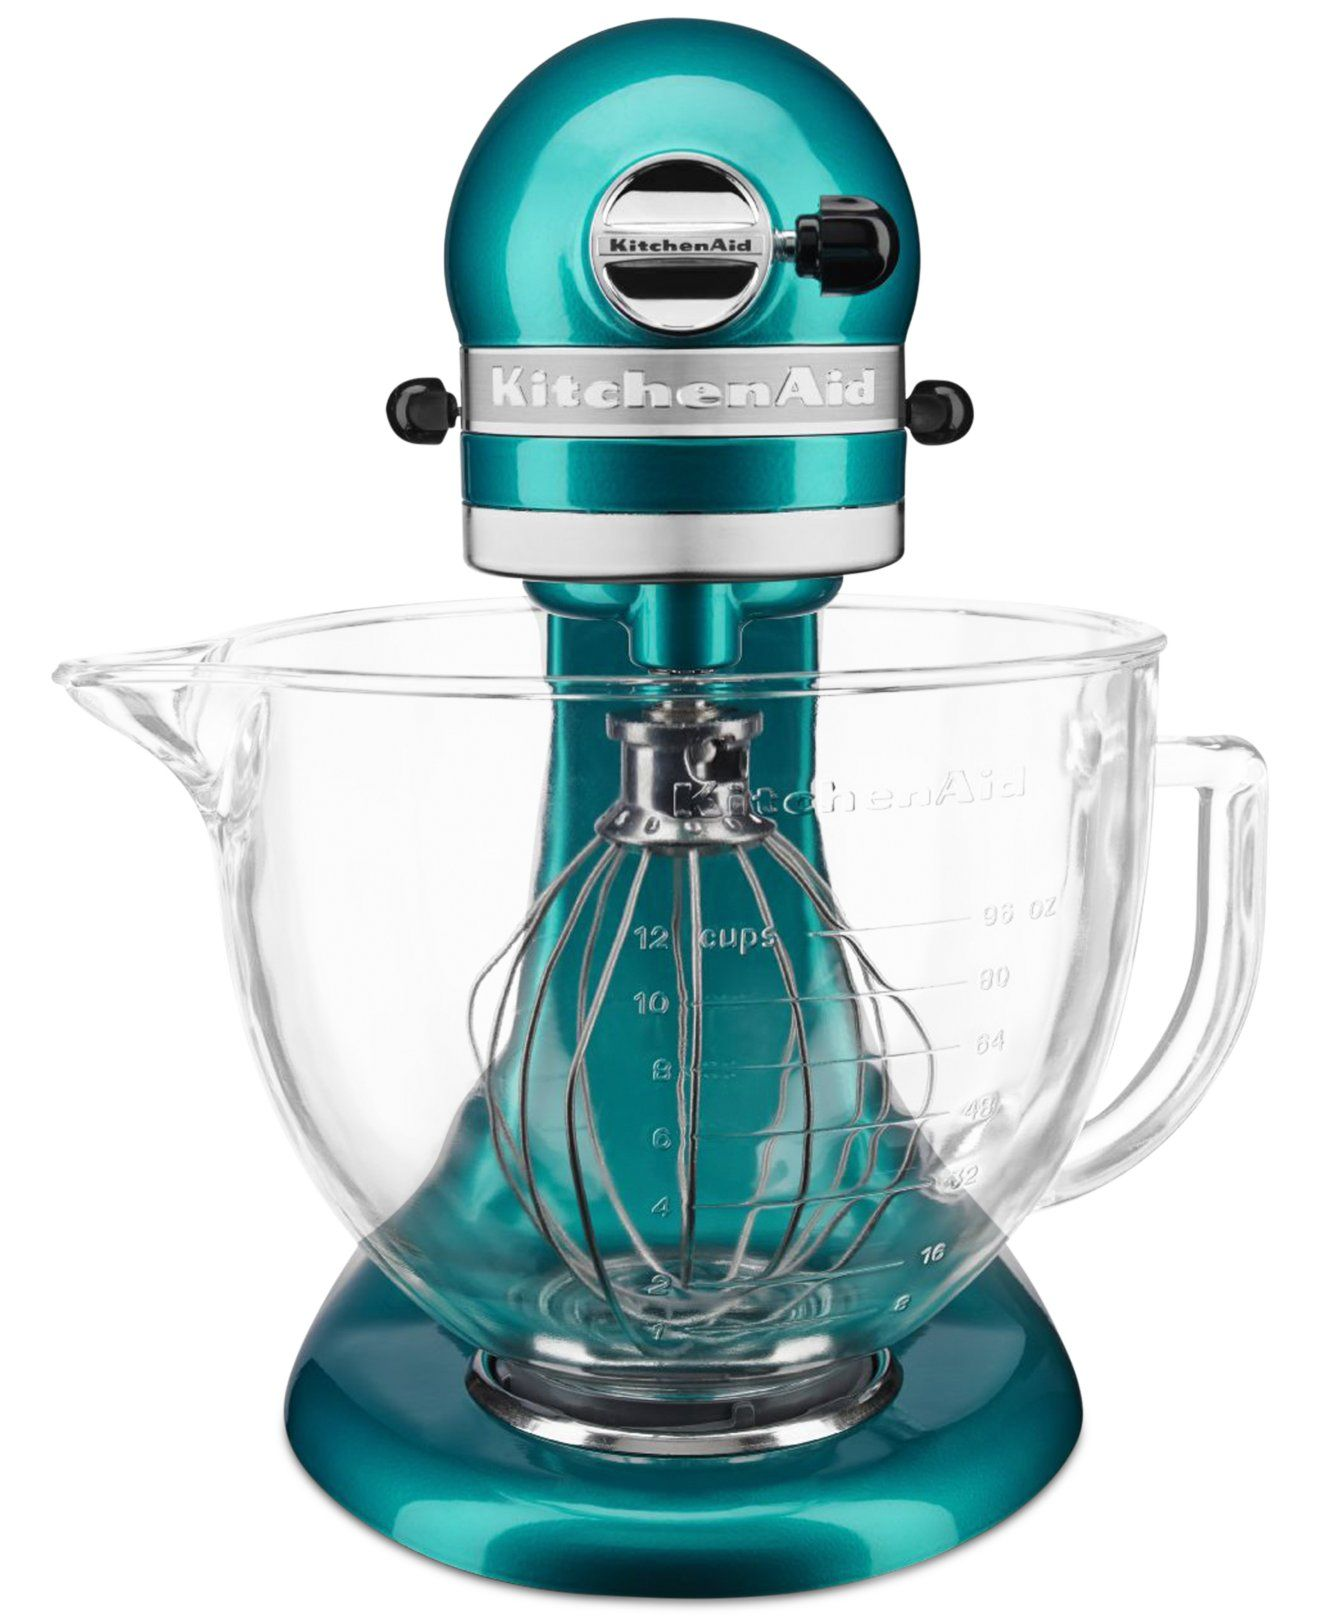 KSM155 5 Qt. Stand Mixer | Pinterest | Stand mixers, KitchenAid and ...